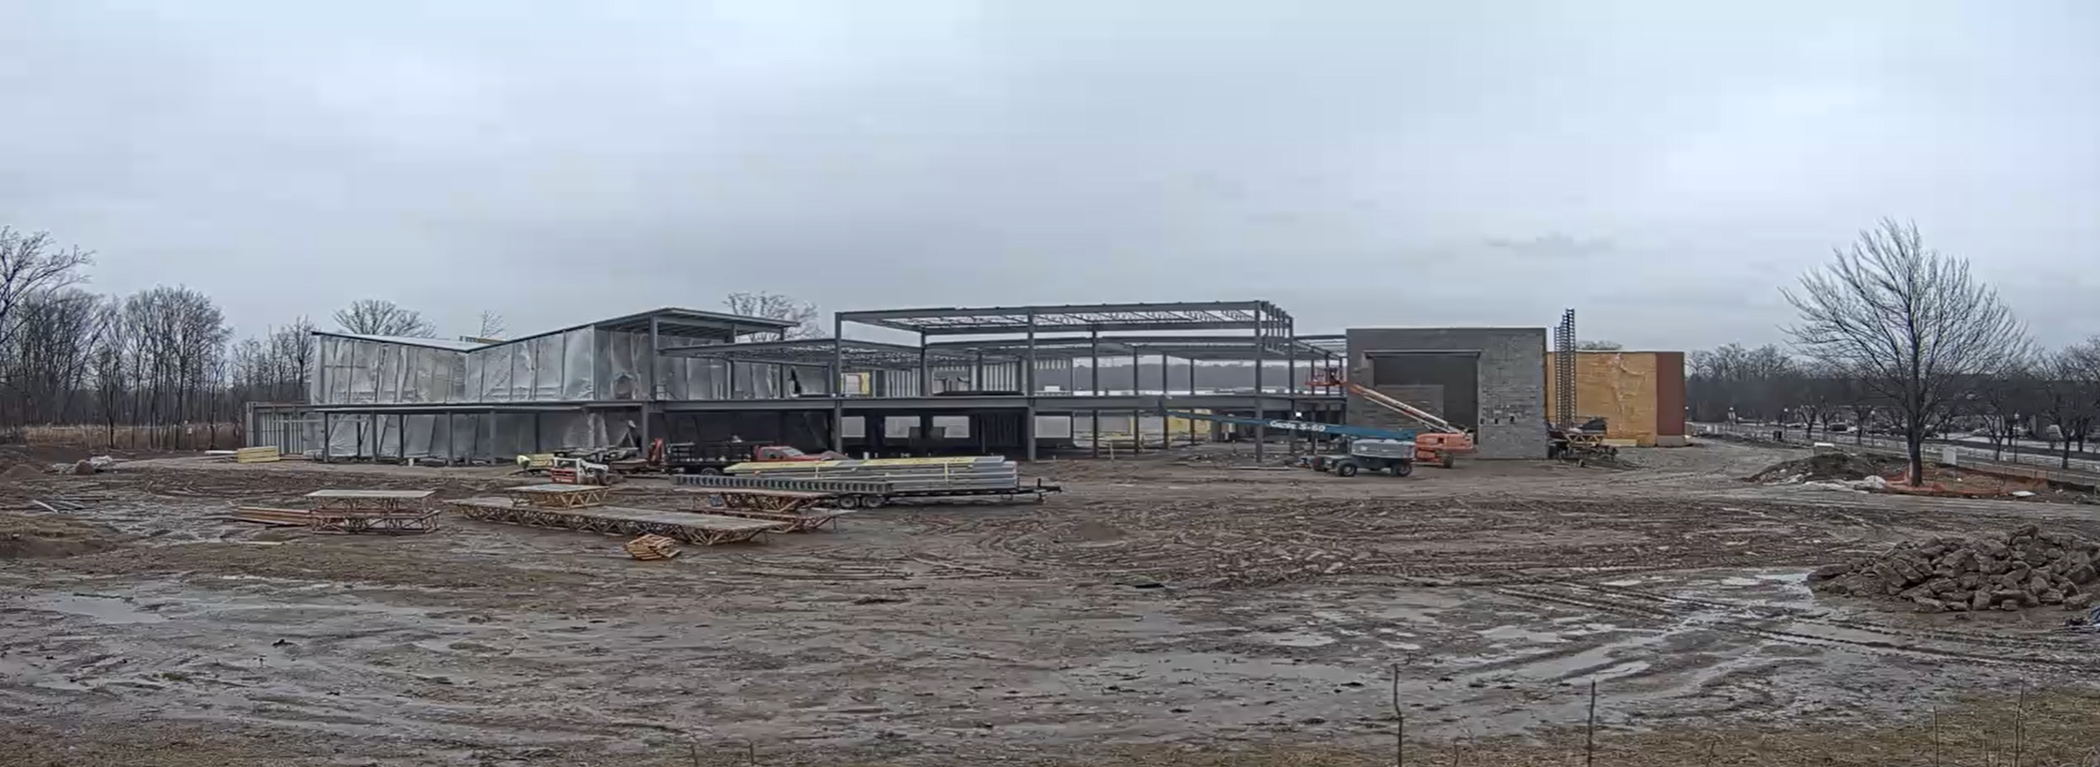 LIVE Cam: Construction in Progress